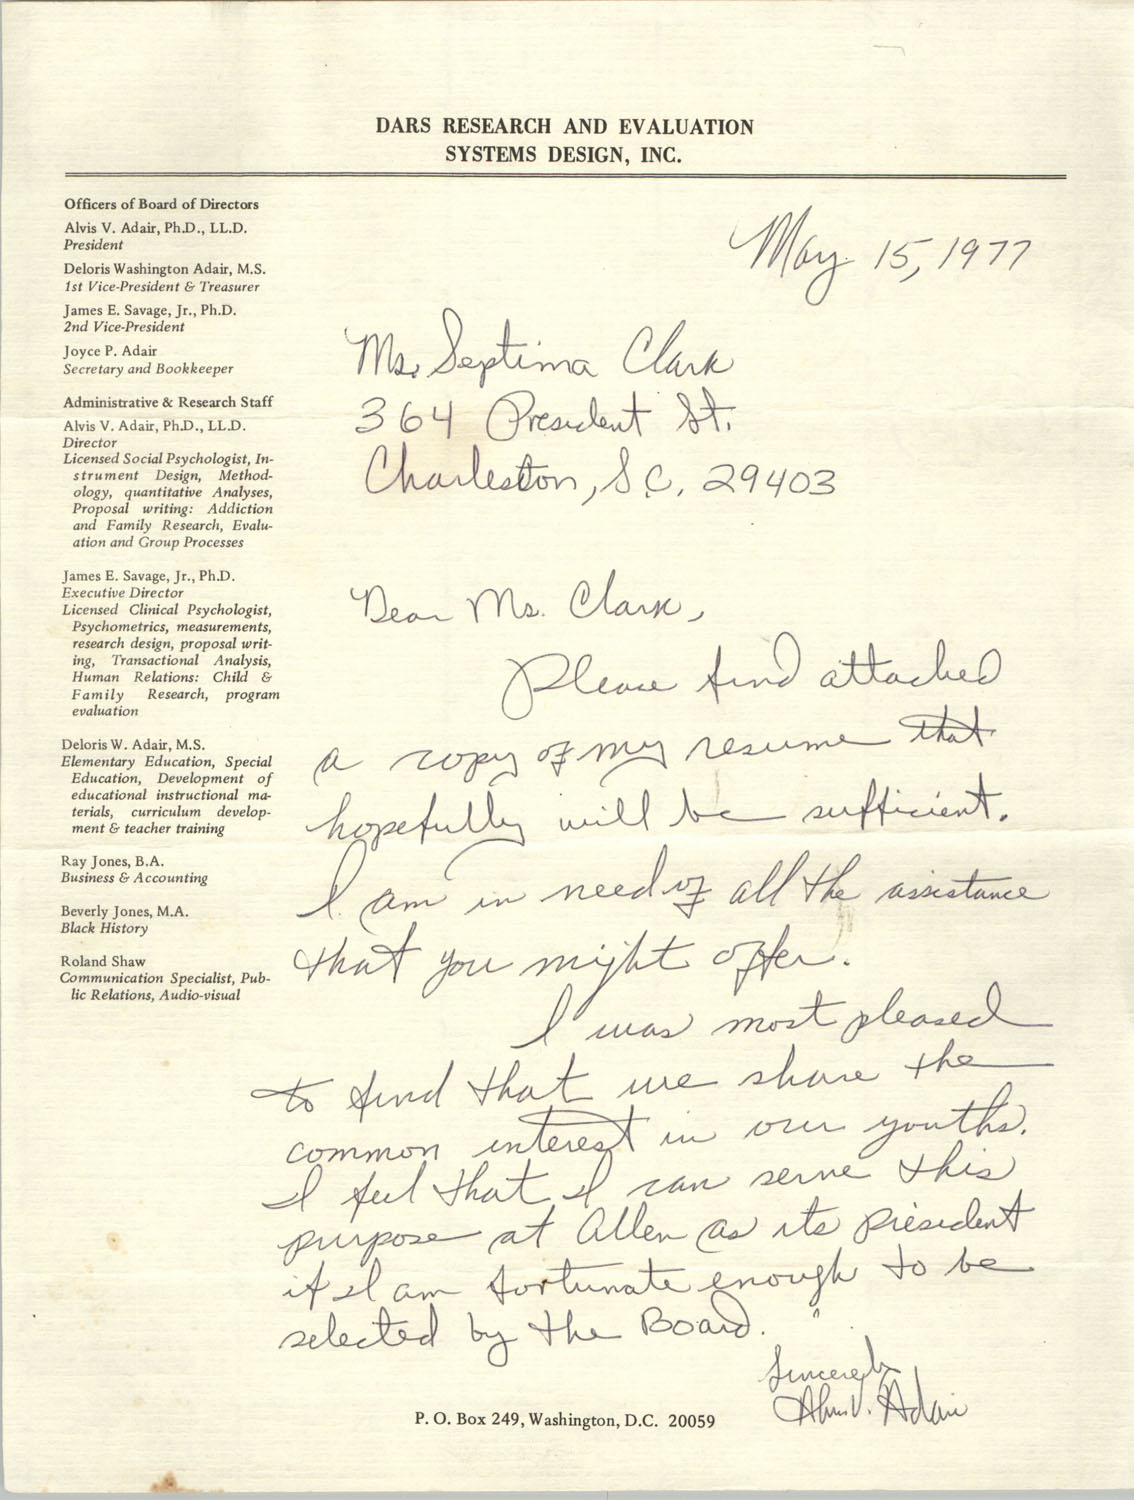 Letter from Alvis V. Adair to Septima P. Clark, May 15, 1977